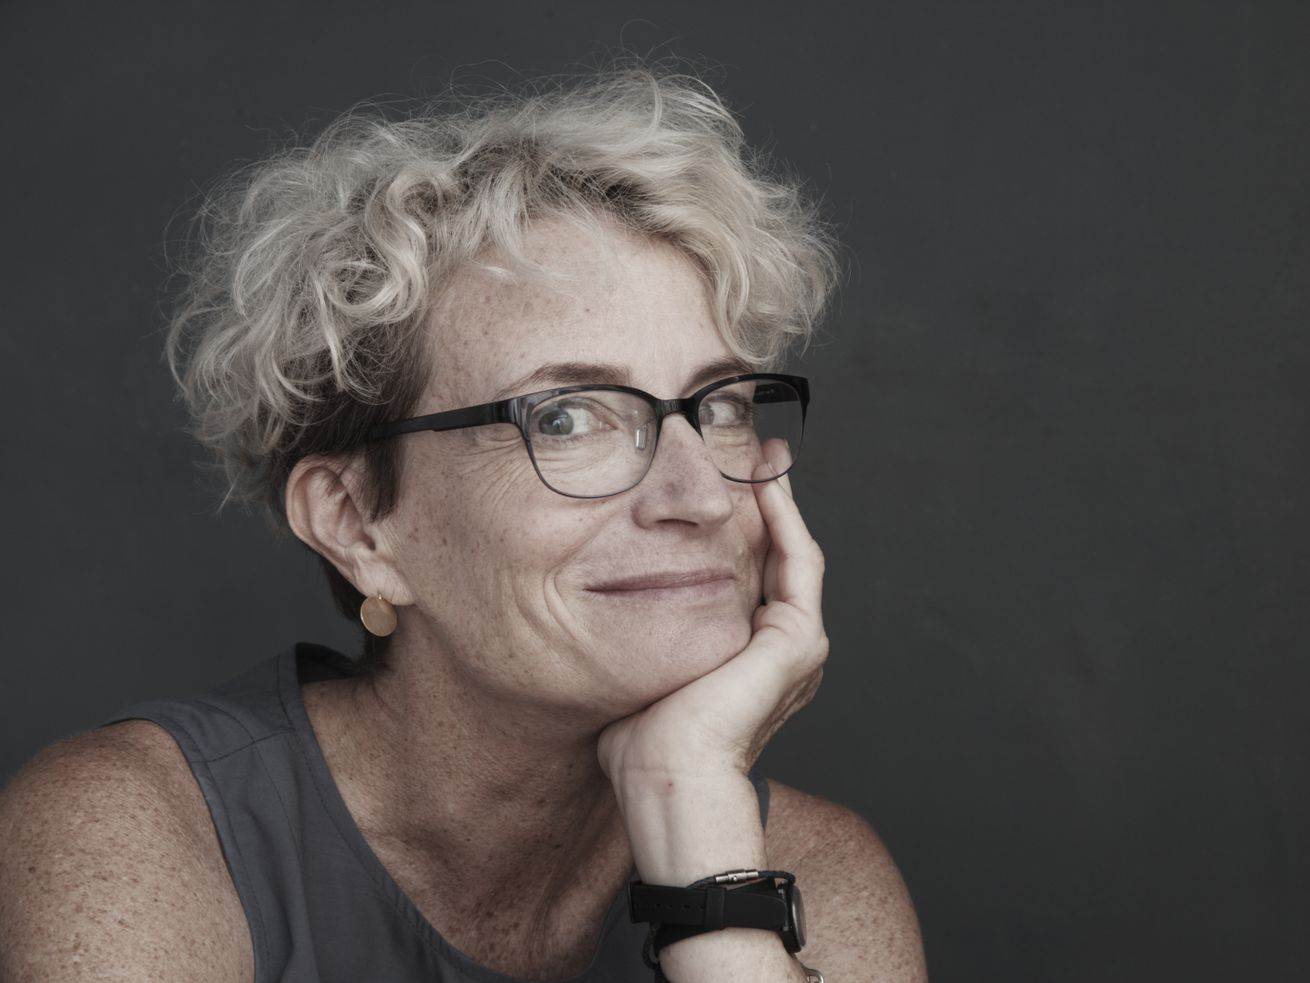 Anti-ageism activist Ashton Applewhite says we need to fix our own deeply ingrained beliefs about what getting older means.